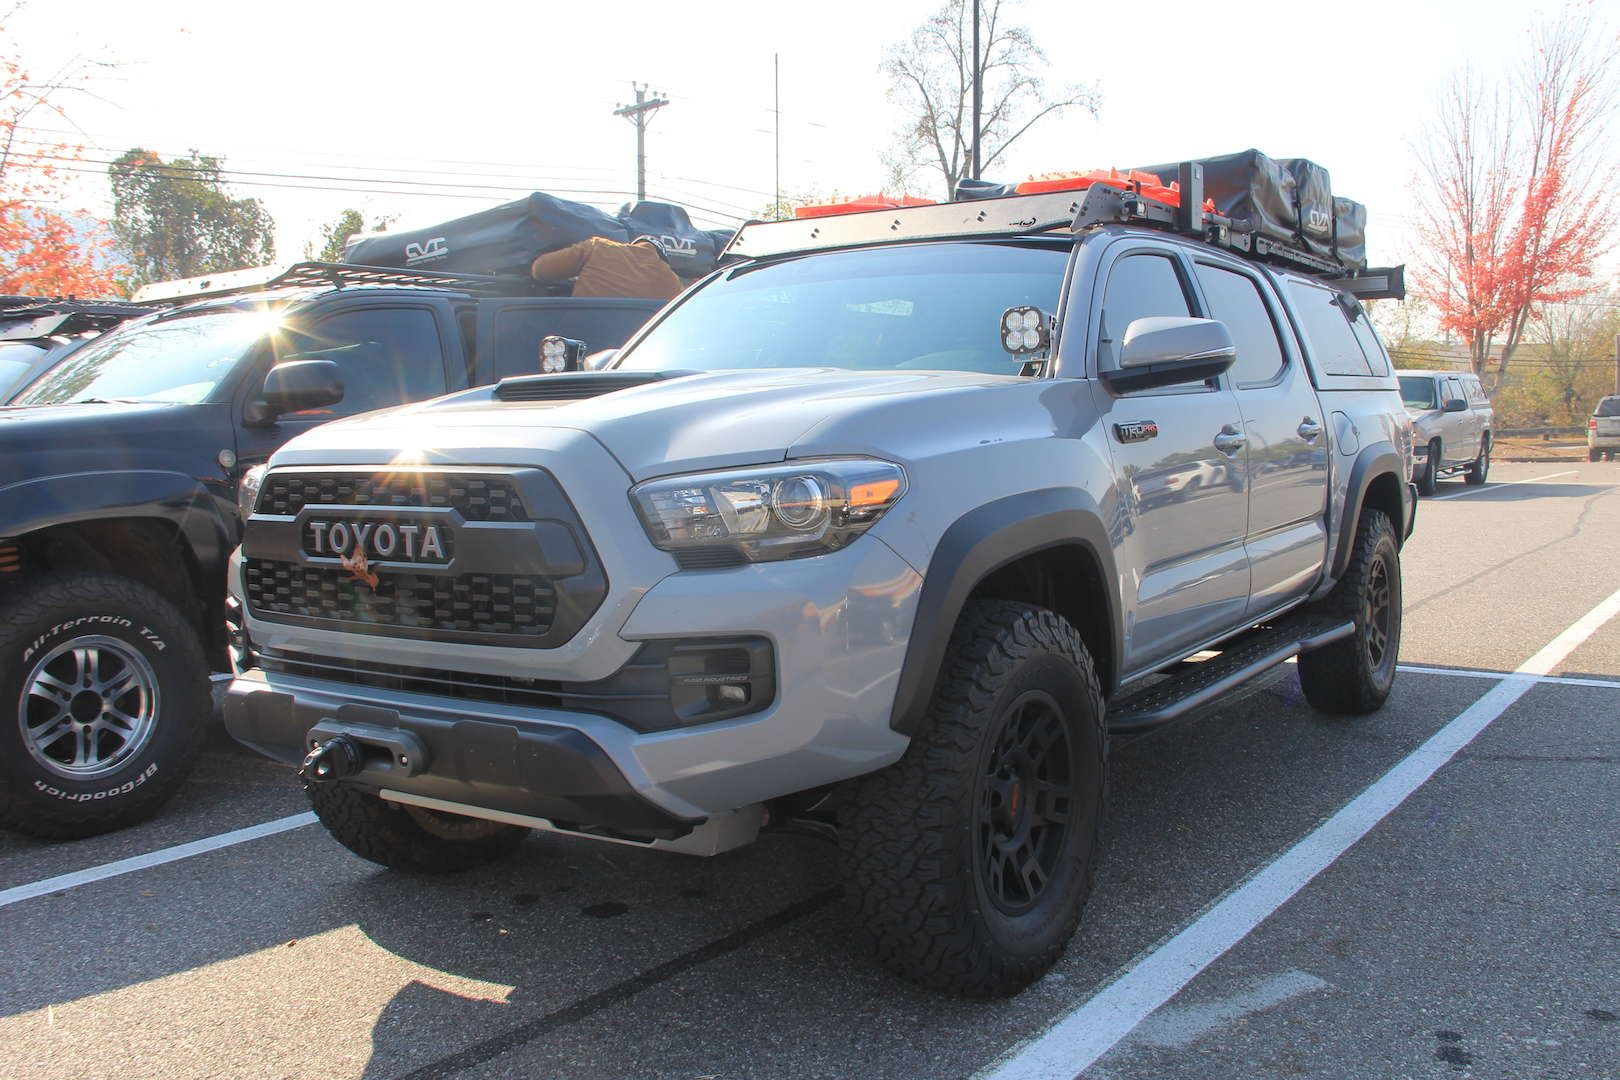 fully equipped 2017 toyota tacoma trd pro toyota 4x4 pinterest tacoma trd toyota tacoma. Black Bedroom Furniture Sets. Home Design Ideas